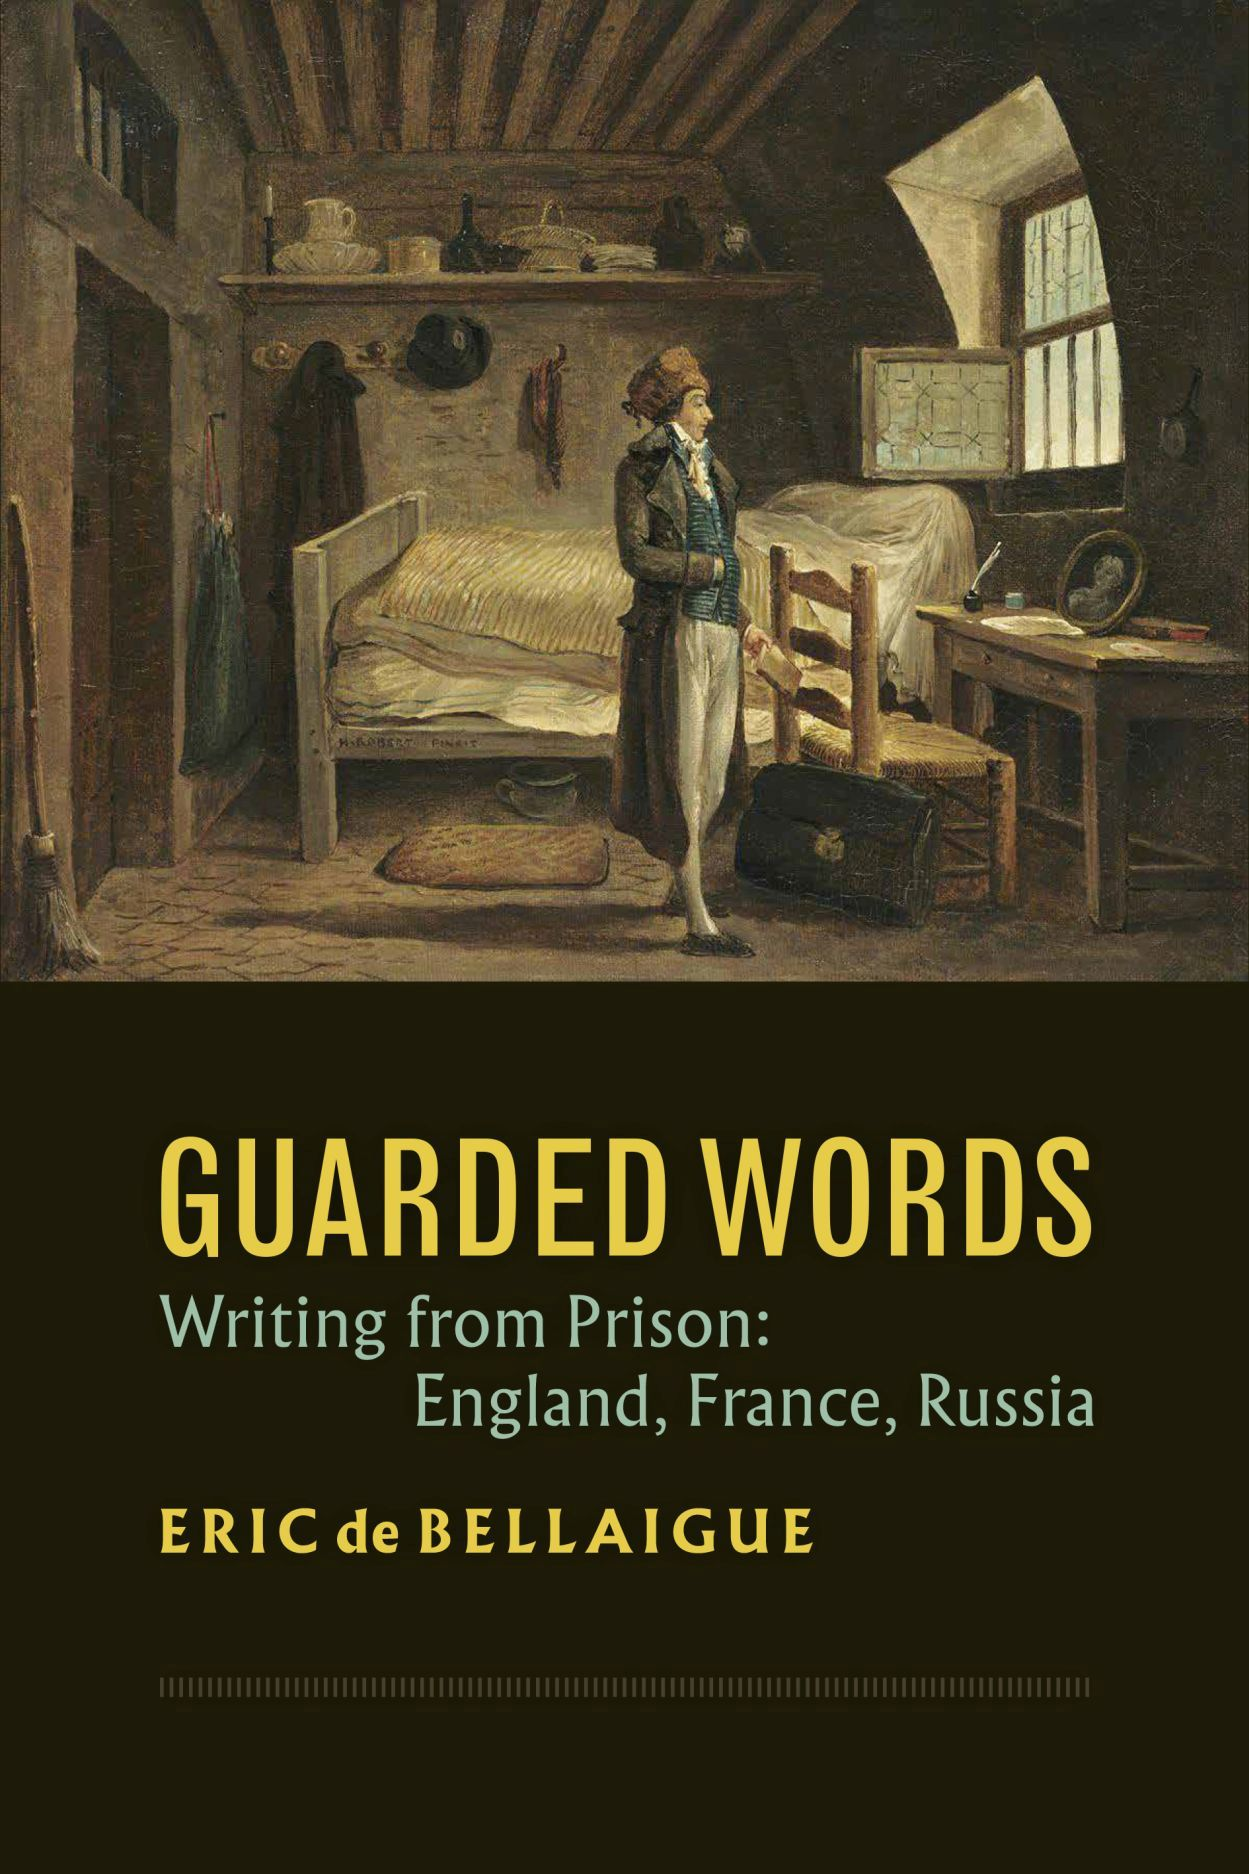 Guarded Words: Writing from Prison: England, France, Russia